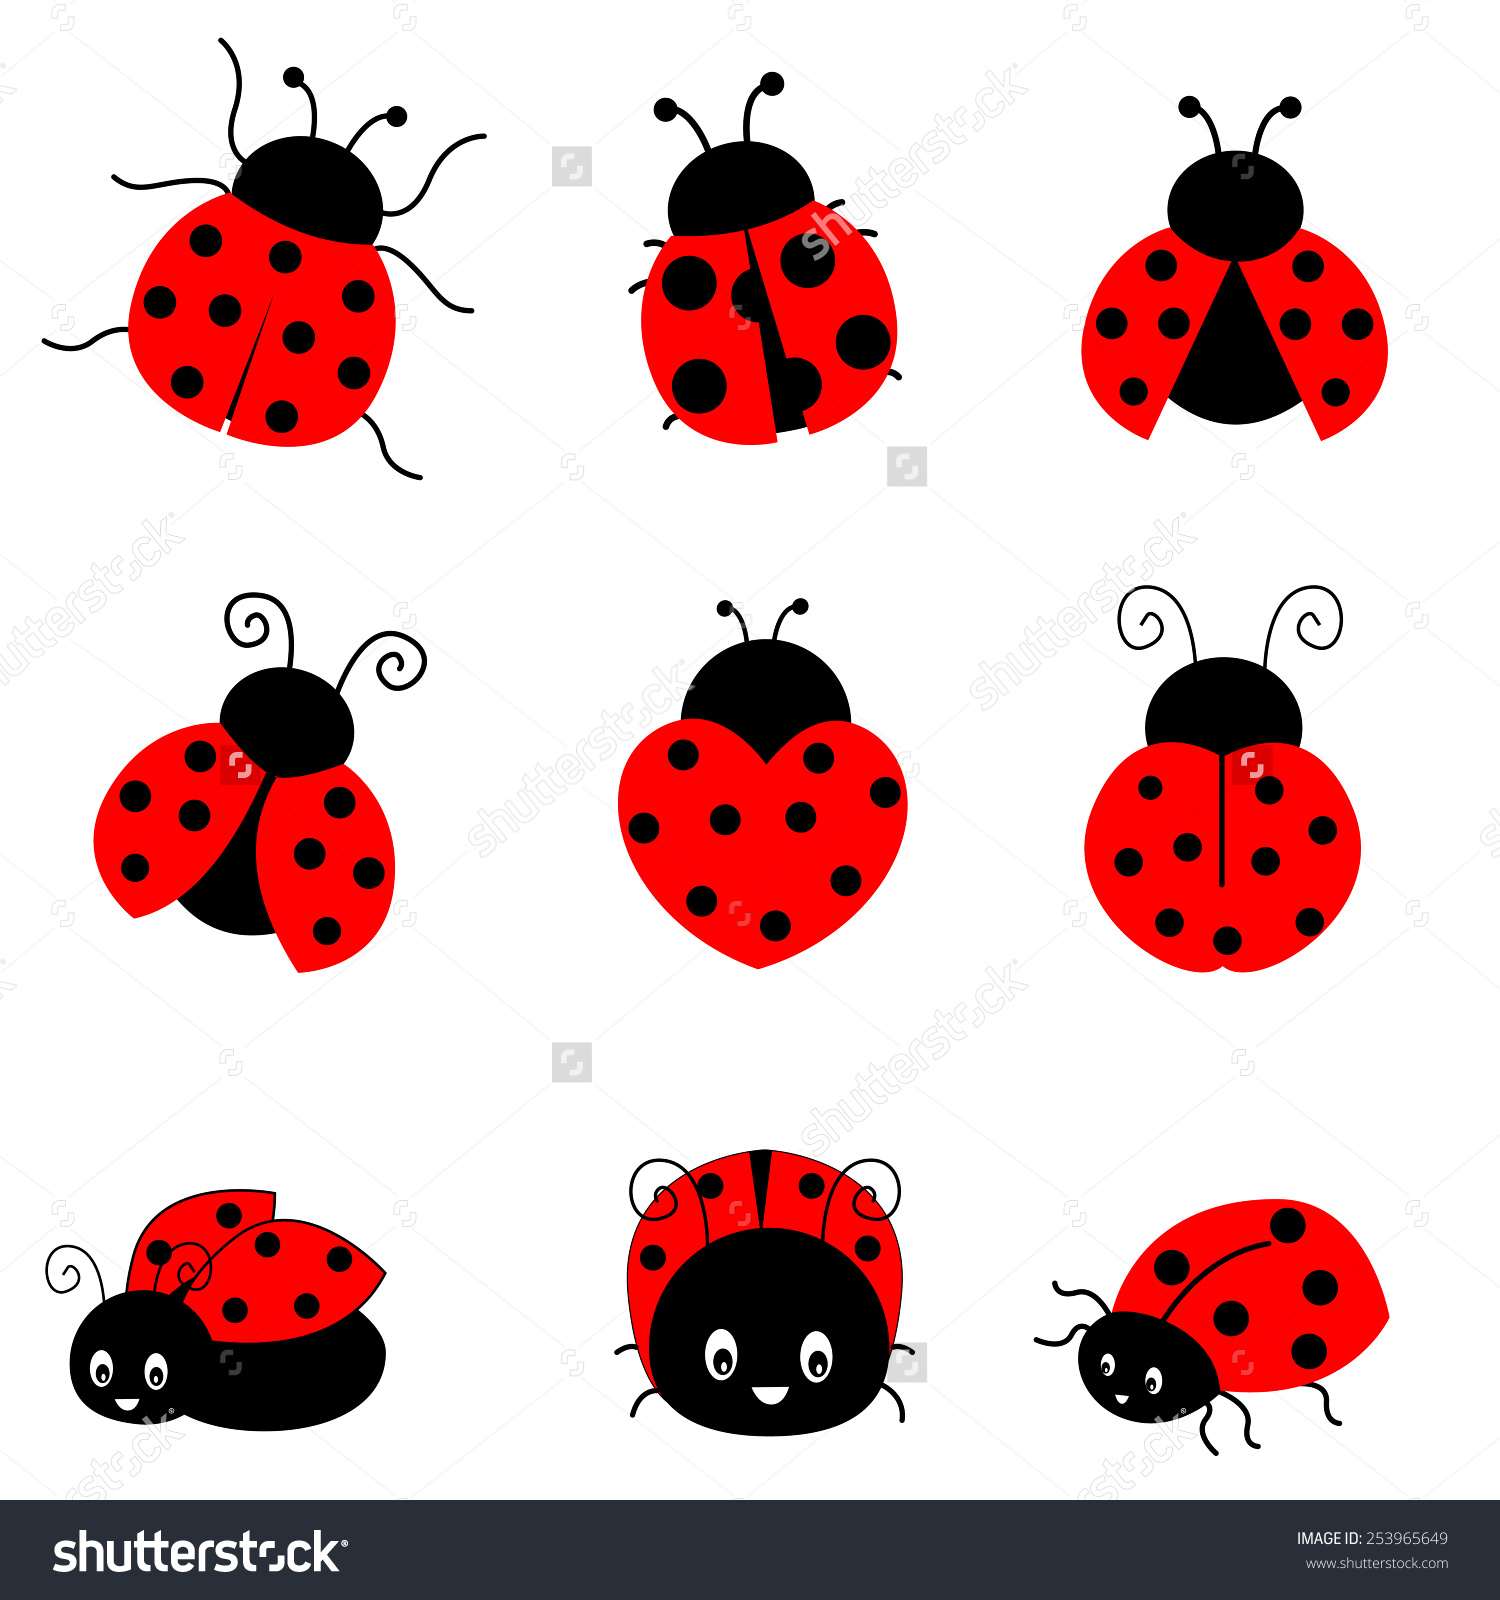 Cute Colorful Ladybugs Clip Art Collection Stock Vector 253965649.